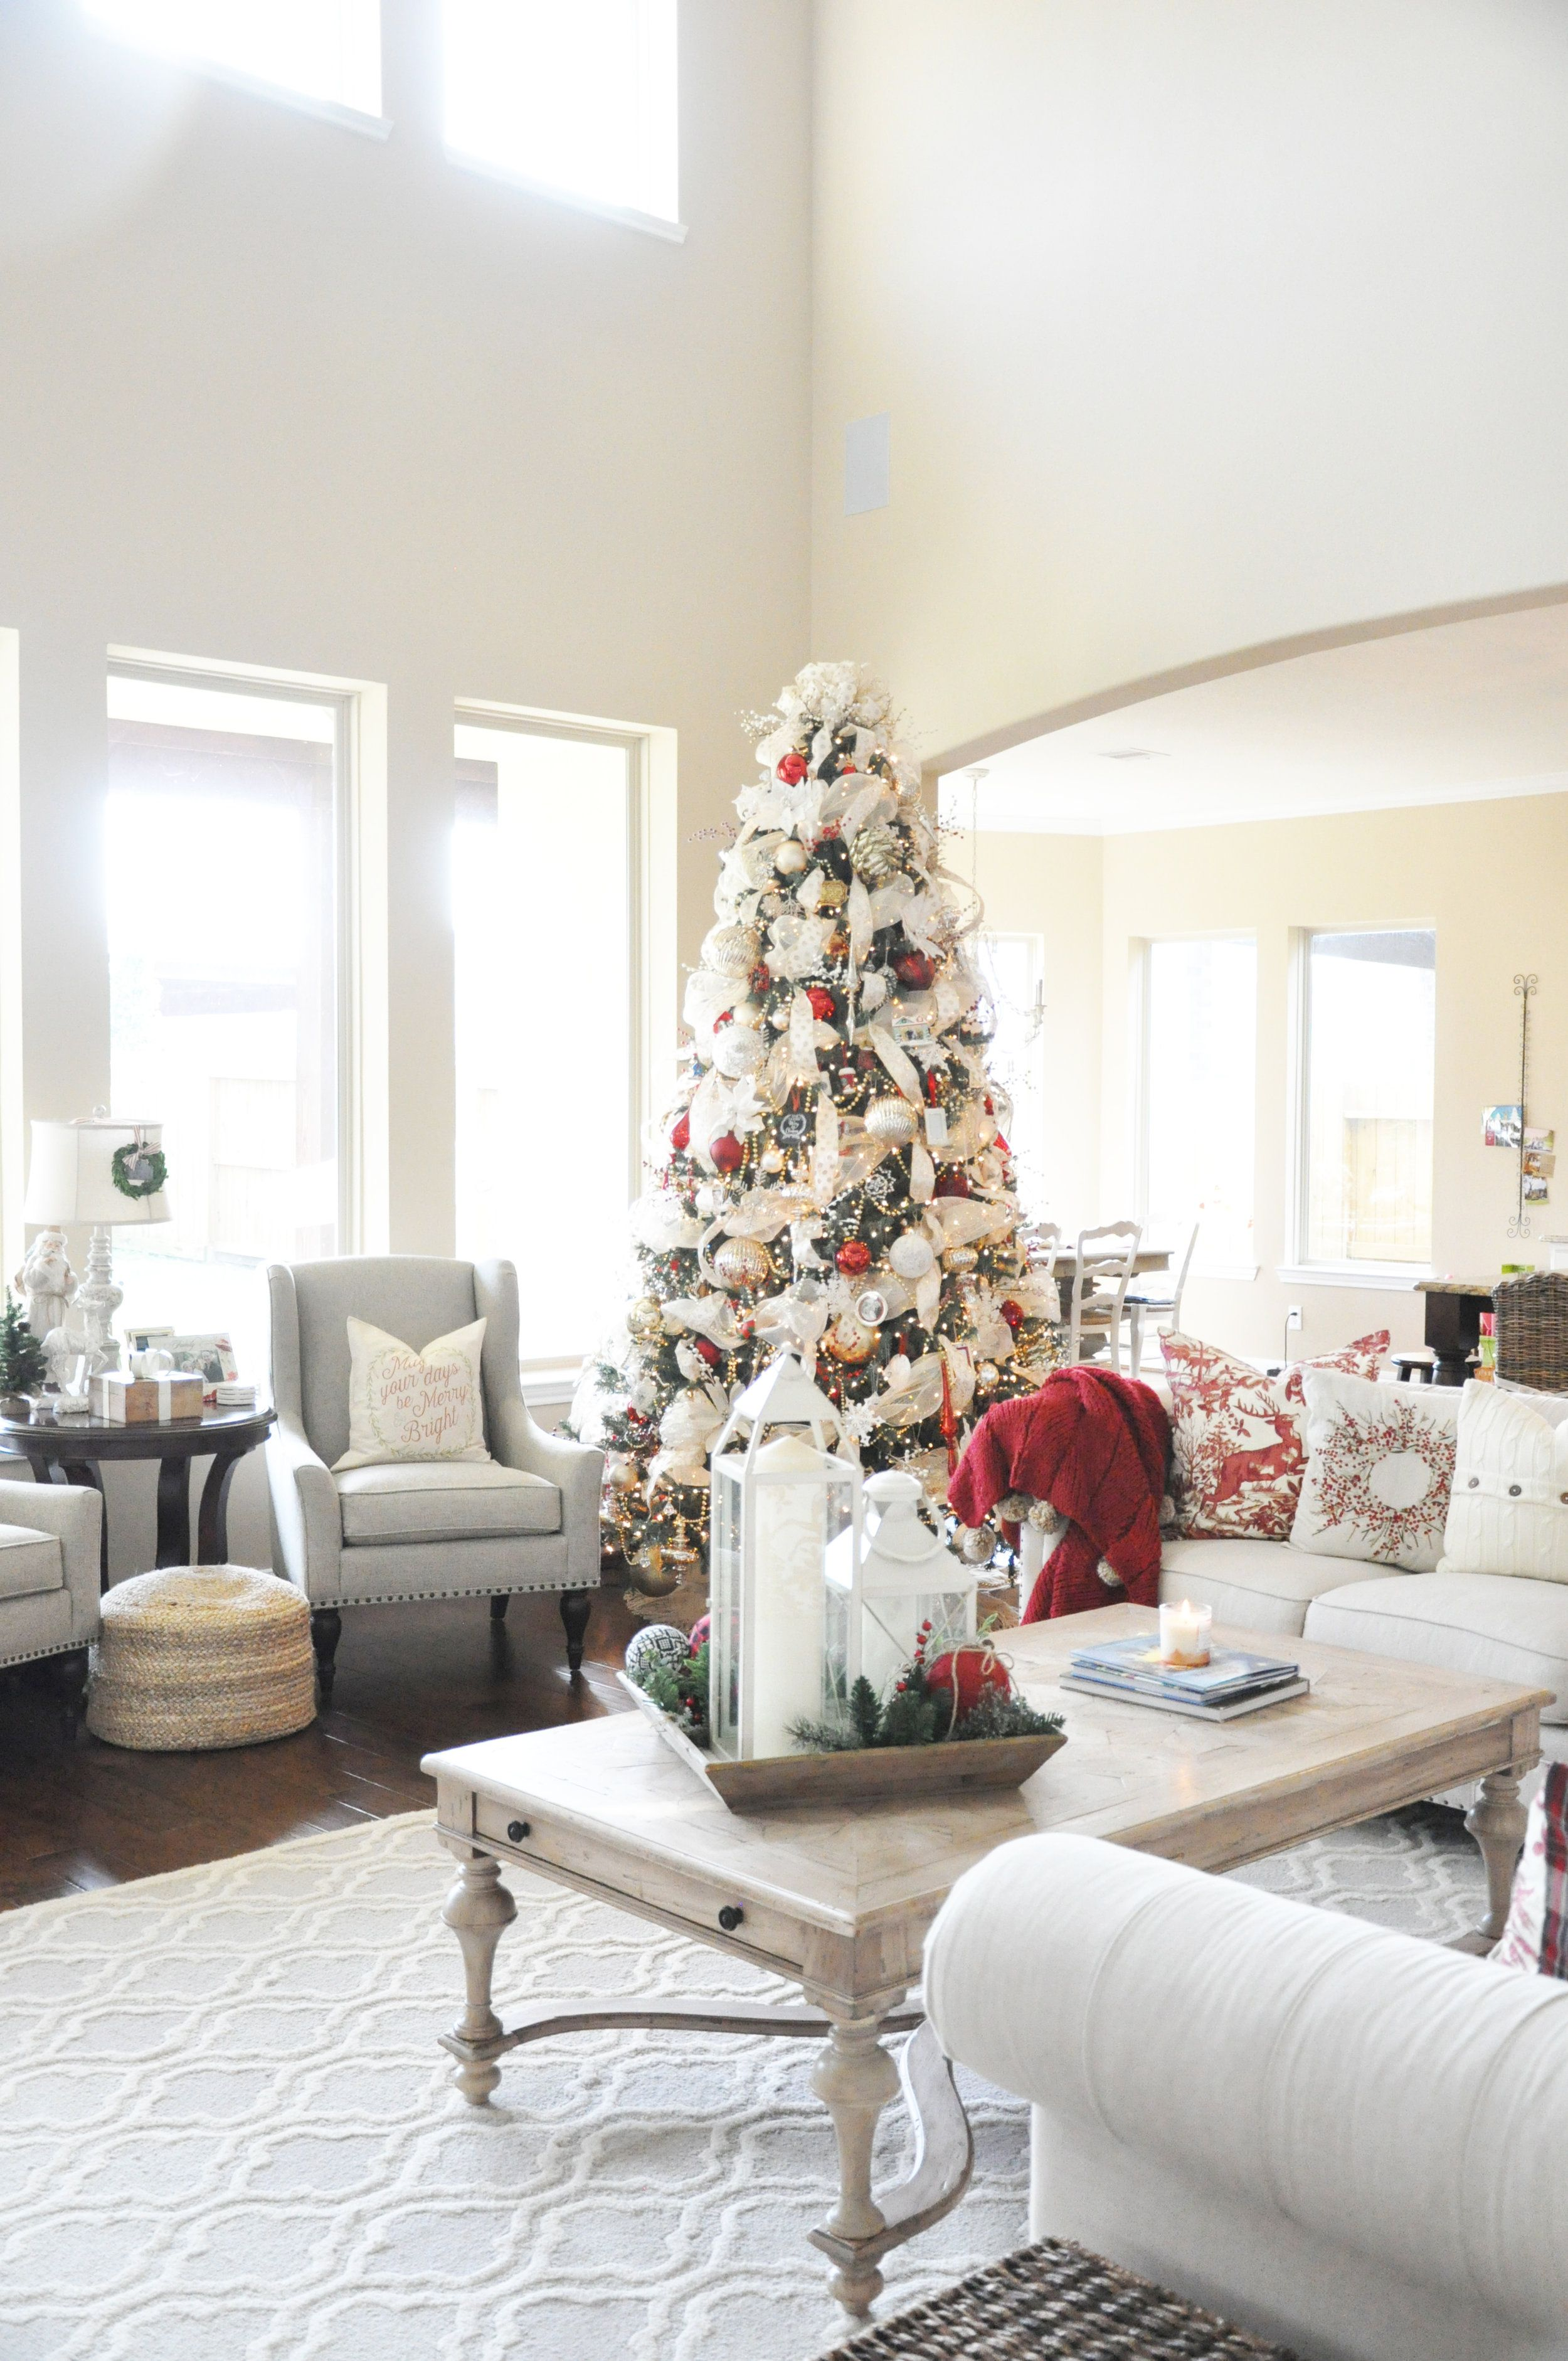 2016 Christmas Home Tour | Decorating, Xmas ideas and Wonderful time